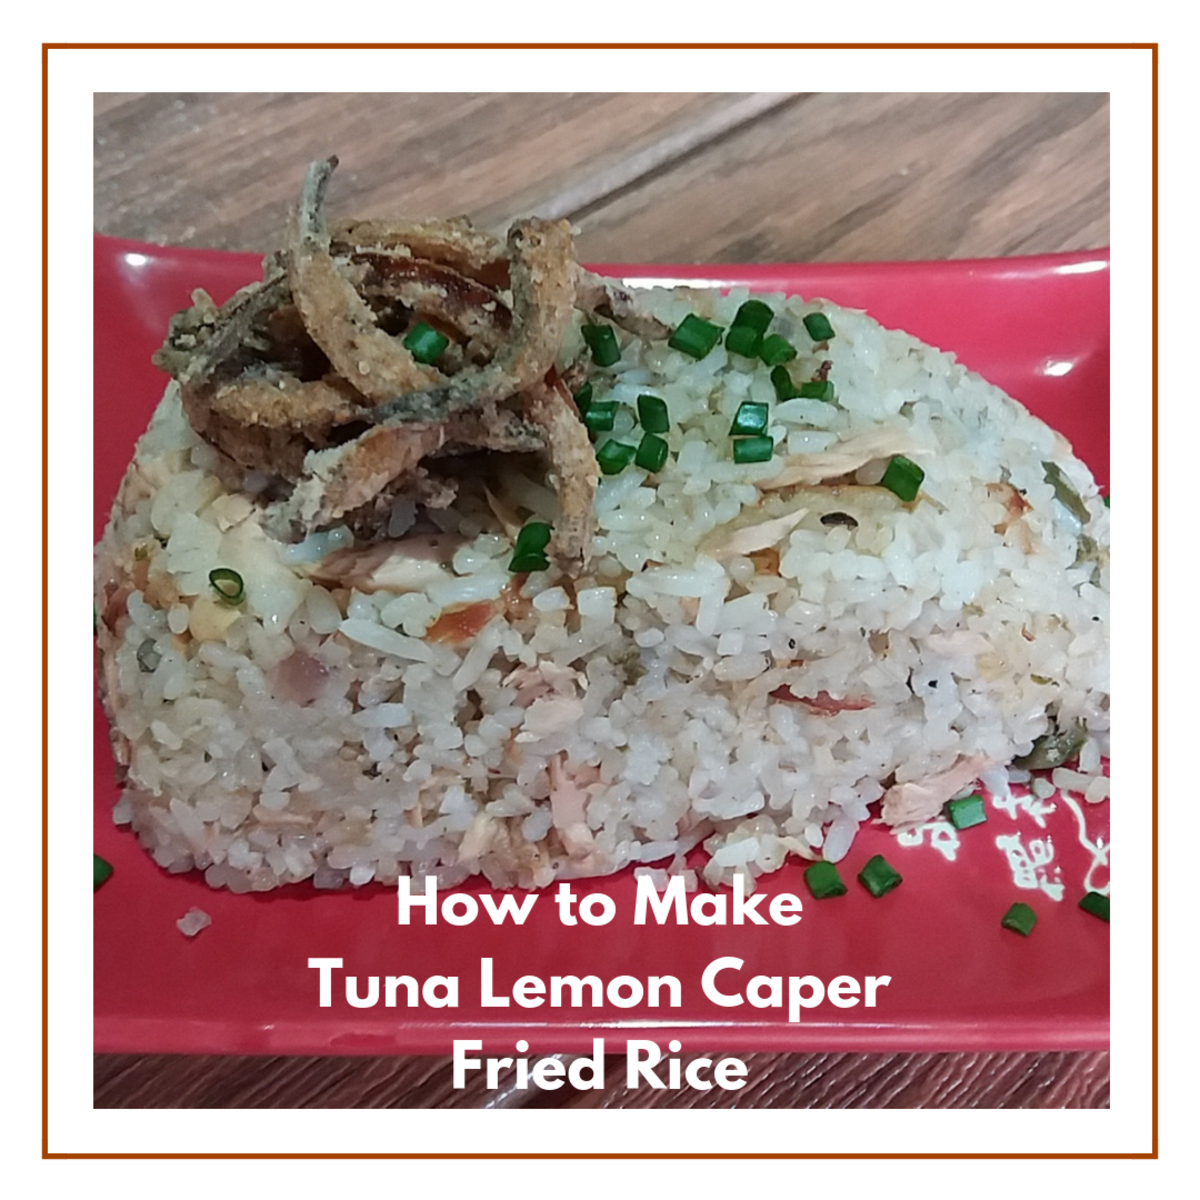 How to Make Tuna Lemon Caper Fried Rice